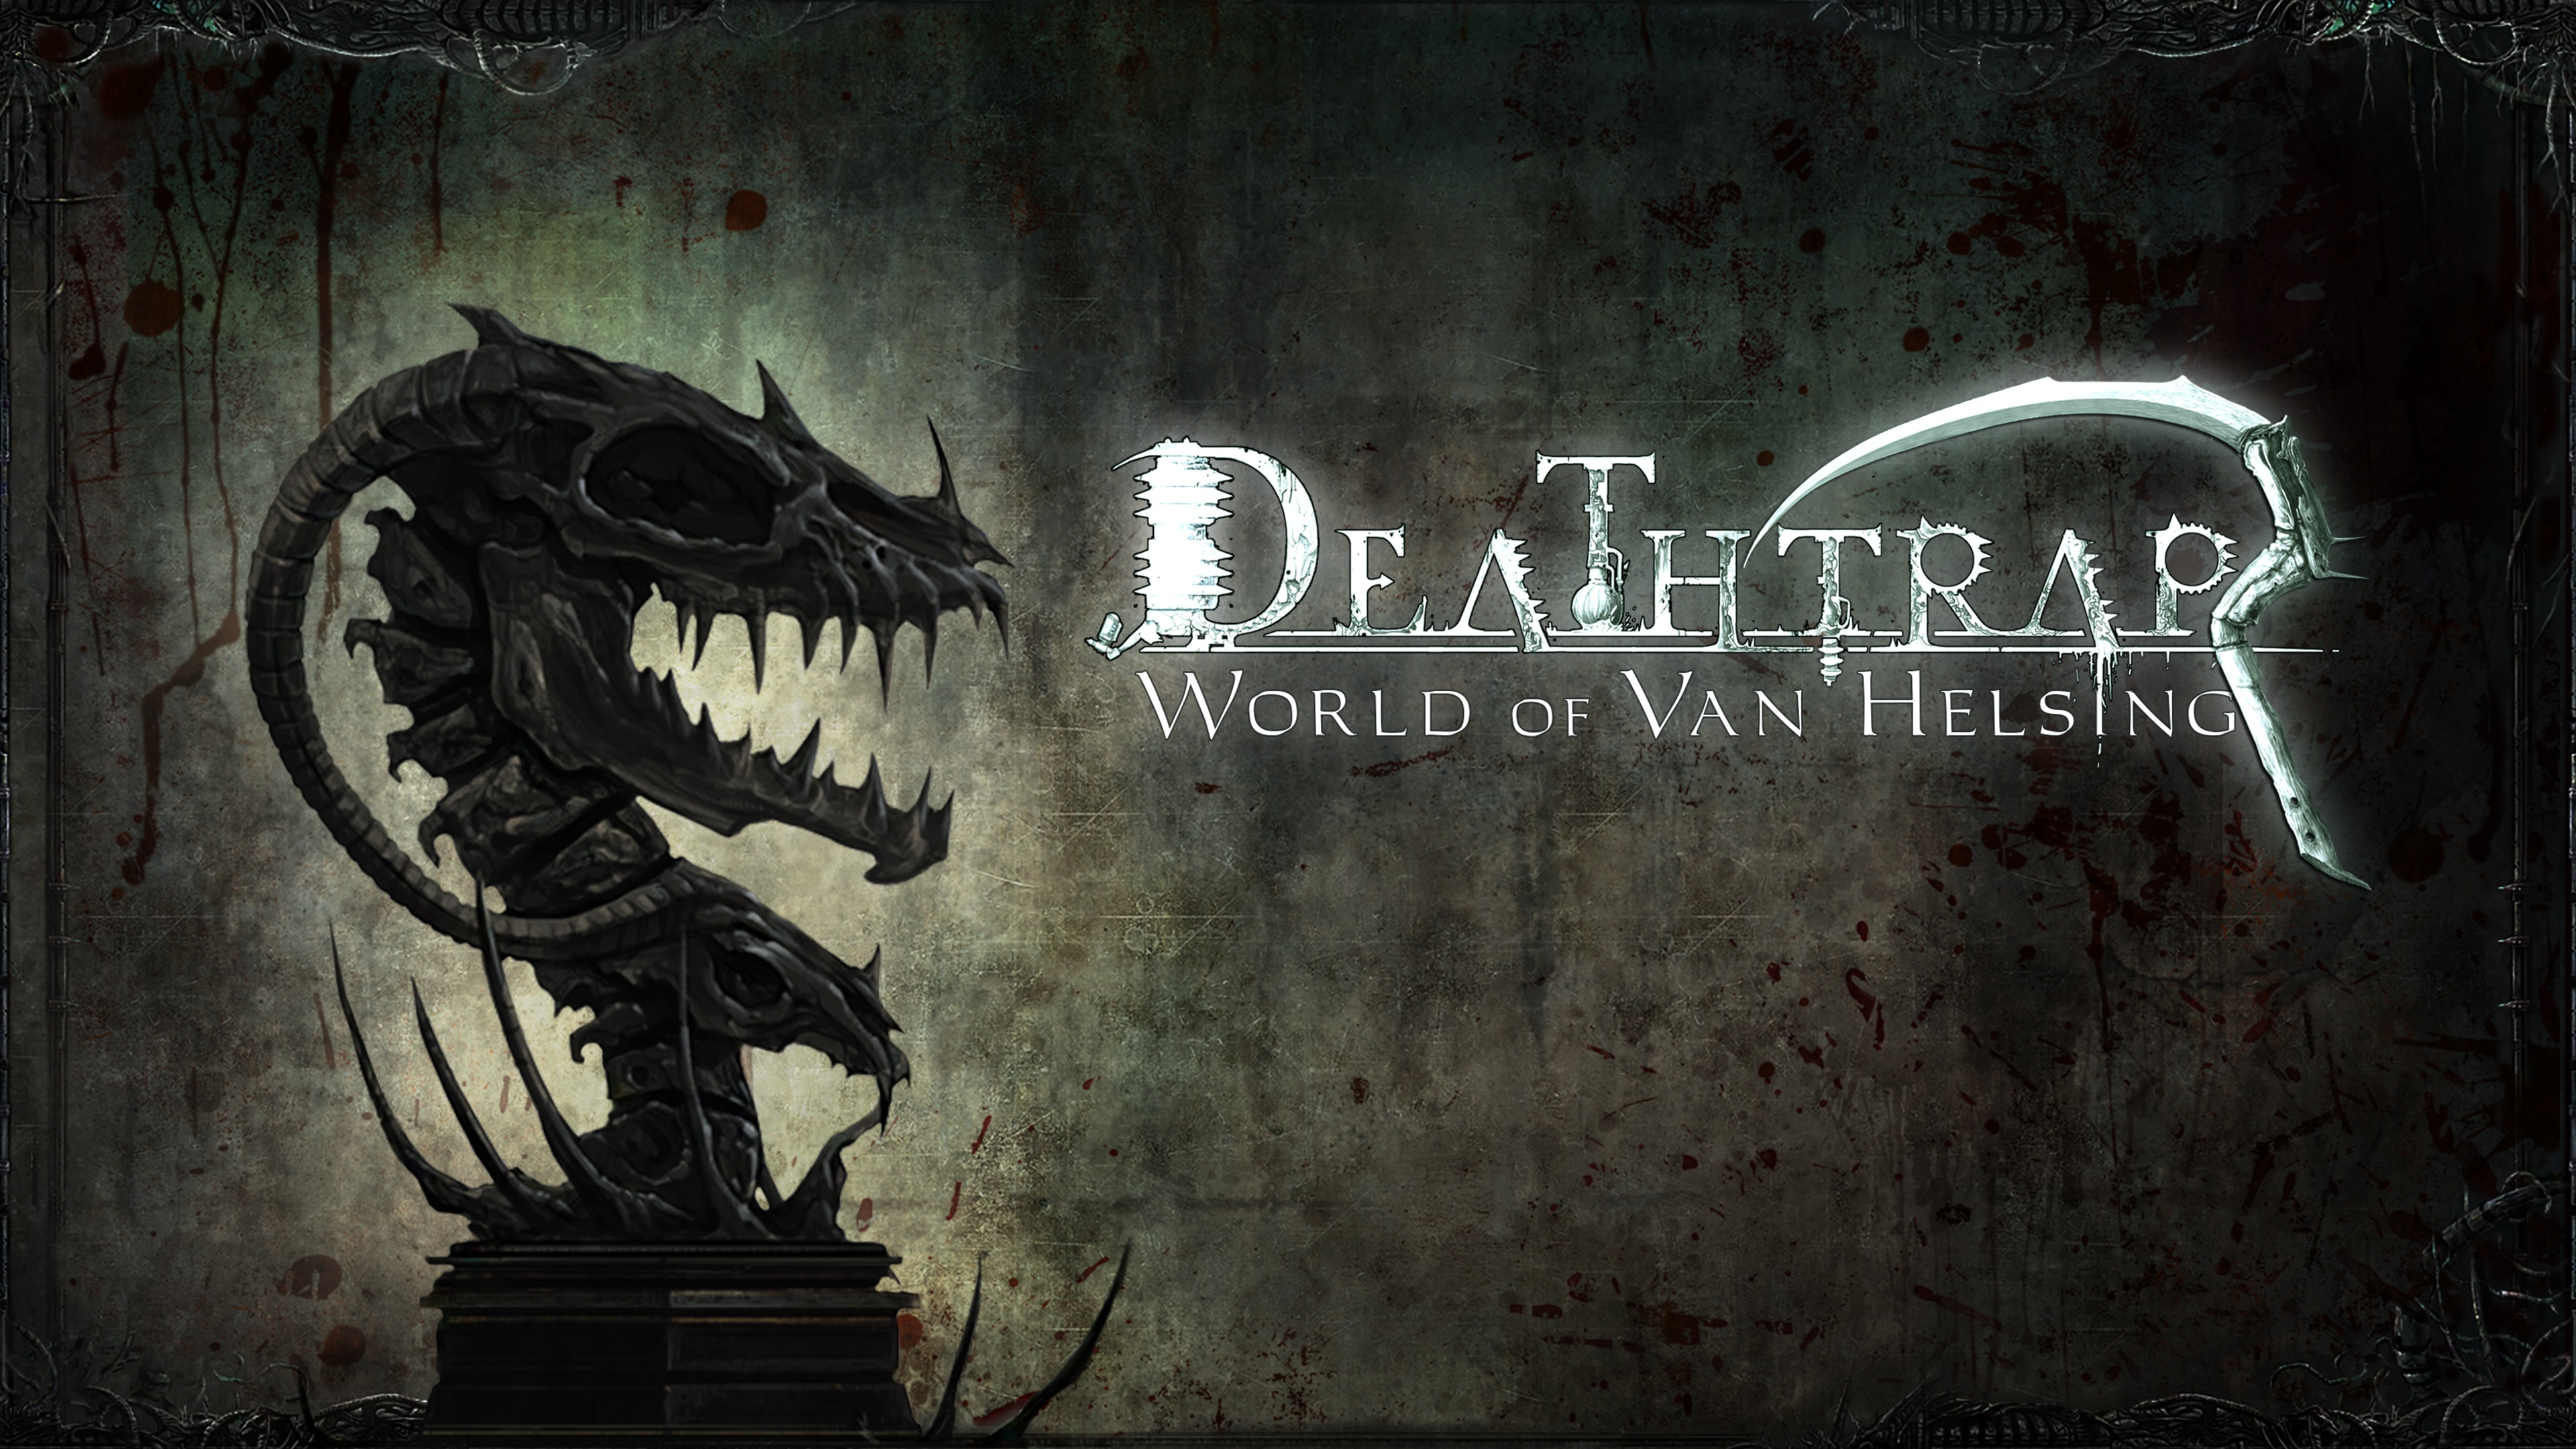 World of Van Helsing: Deathtrap